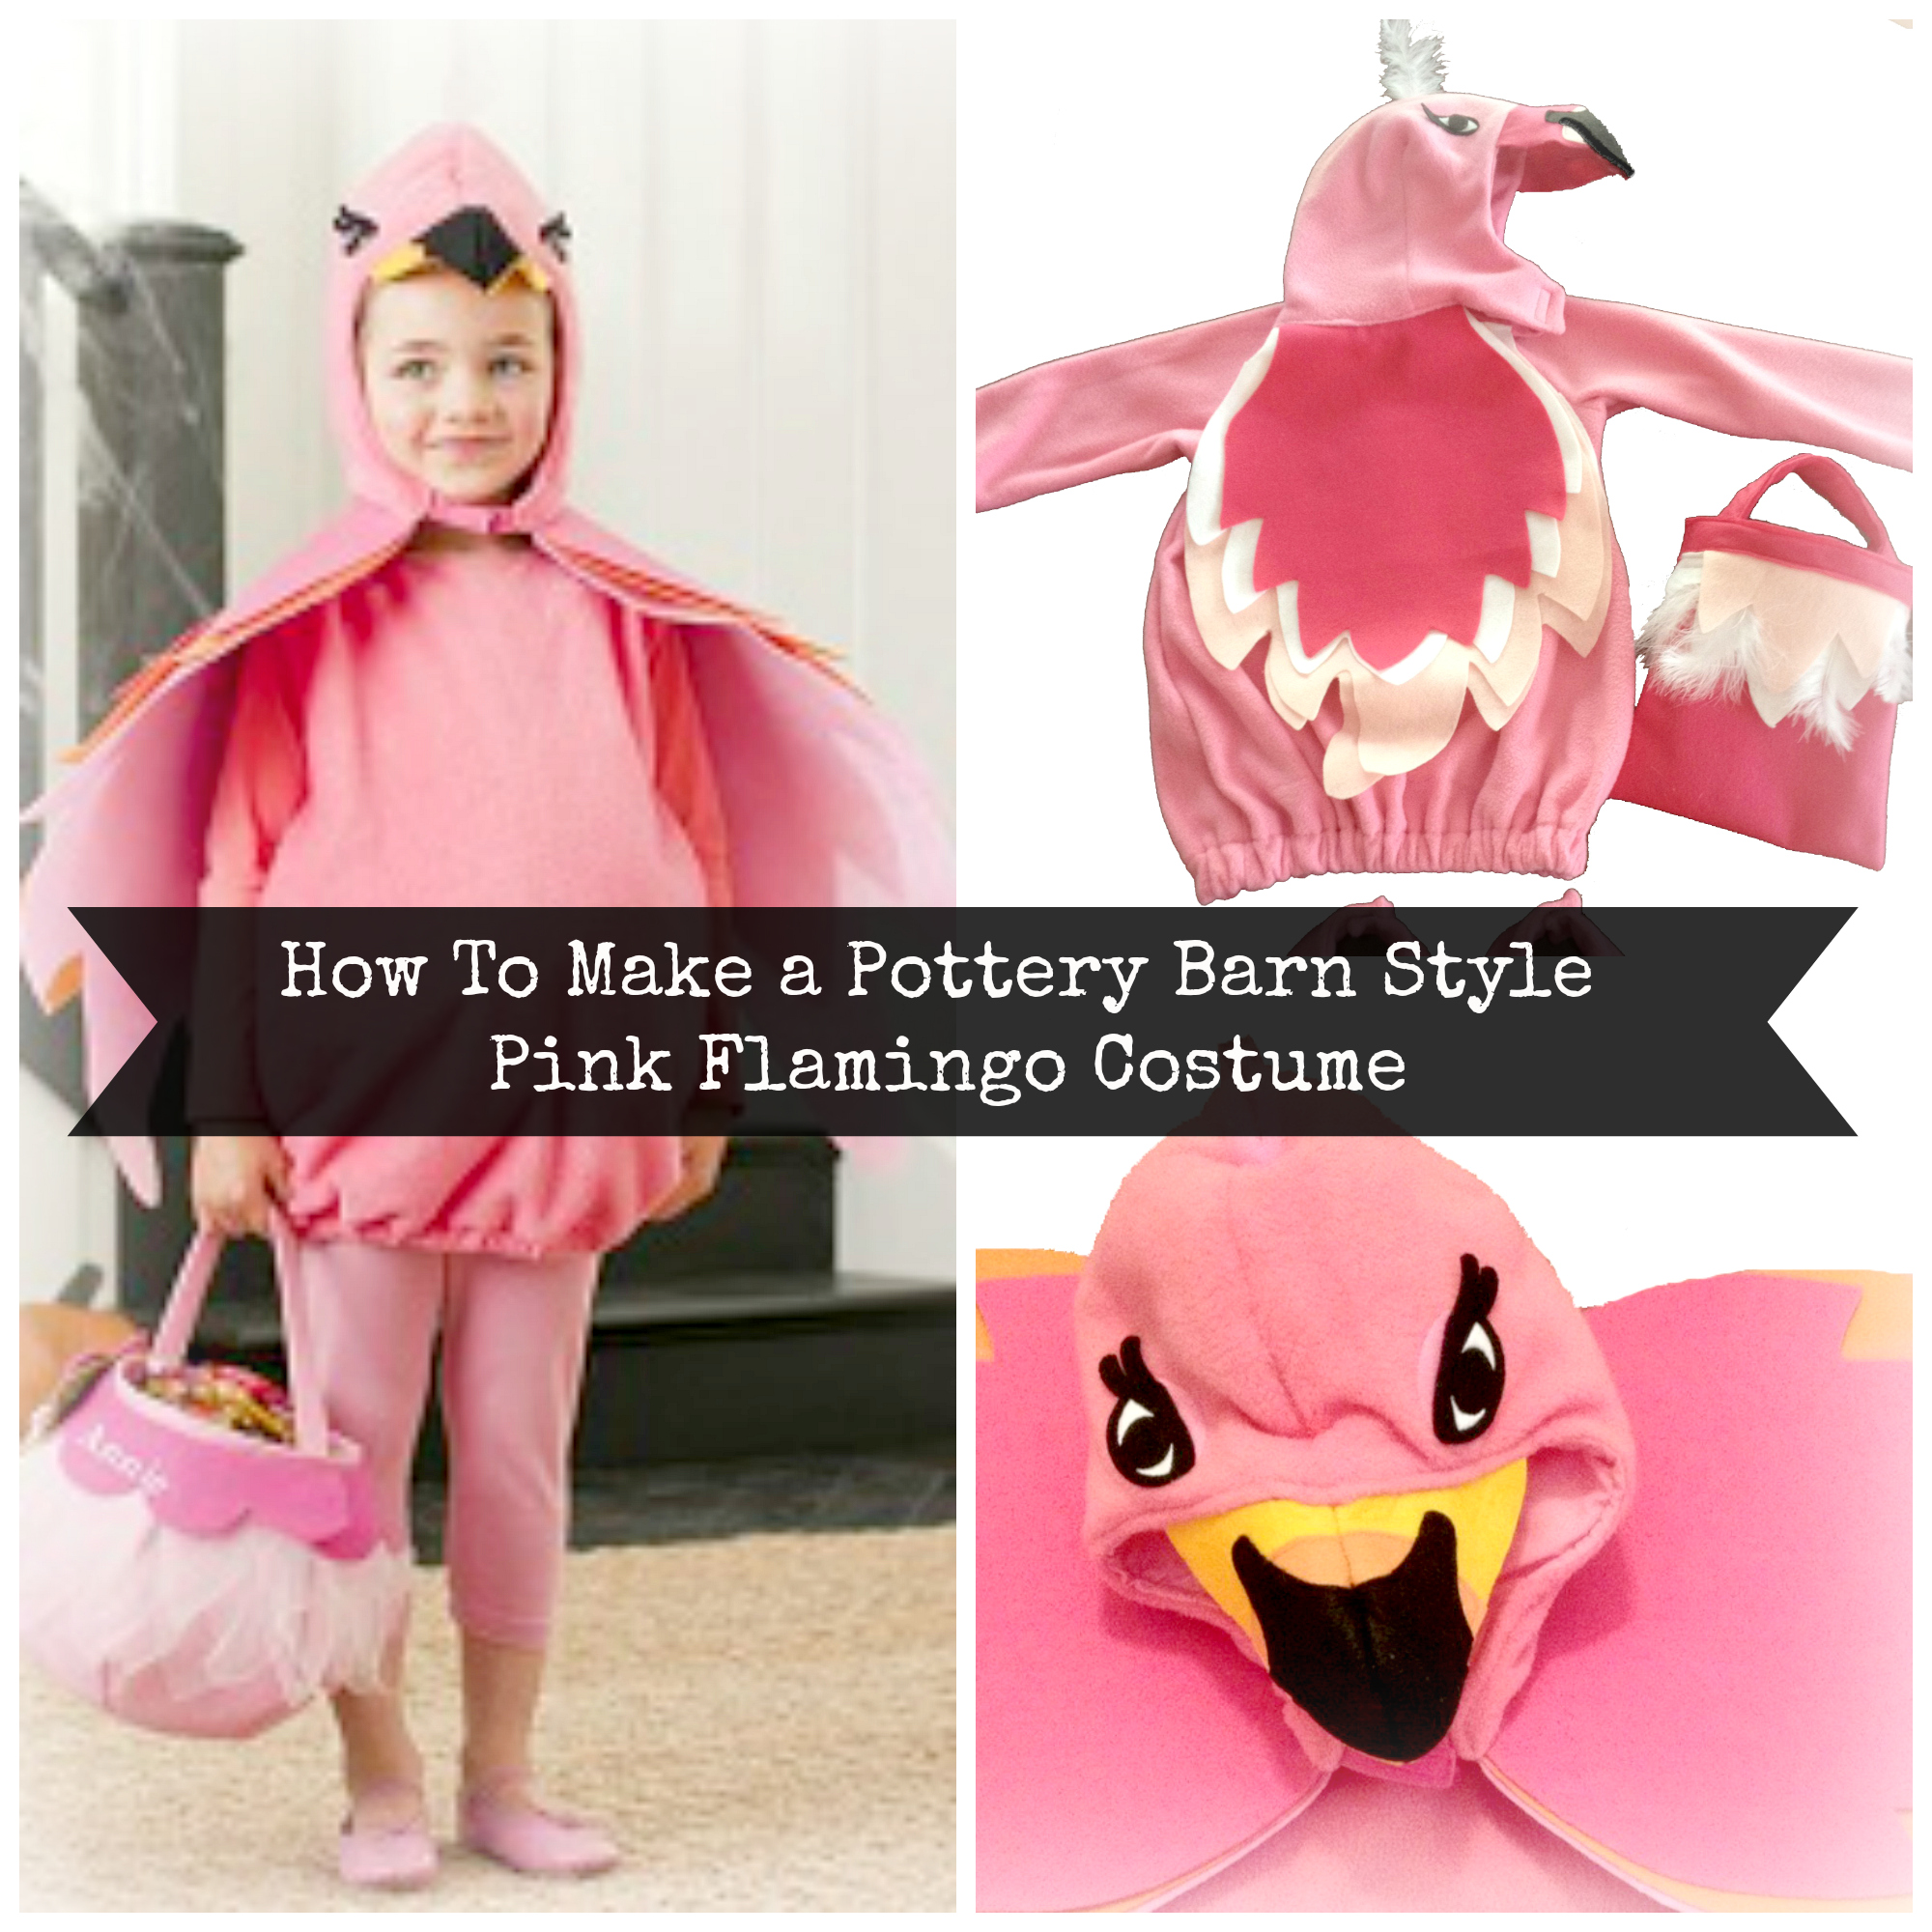 Pink flamingo Costume tutorial